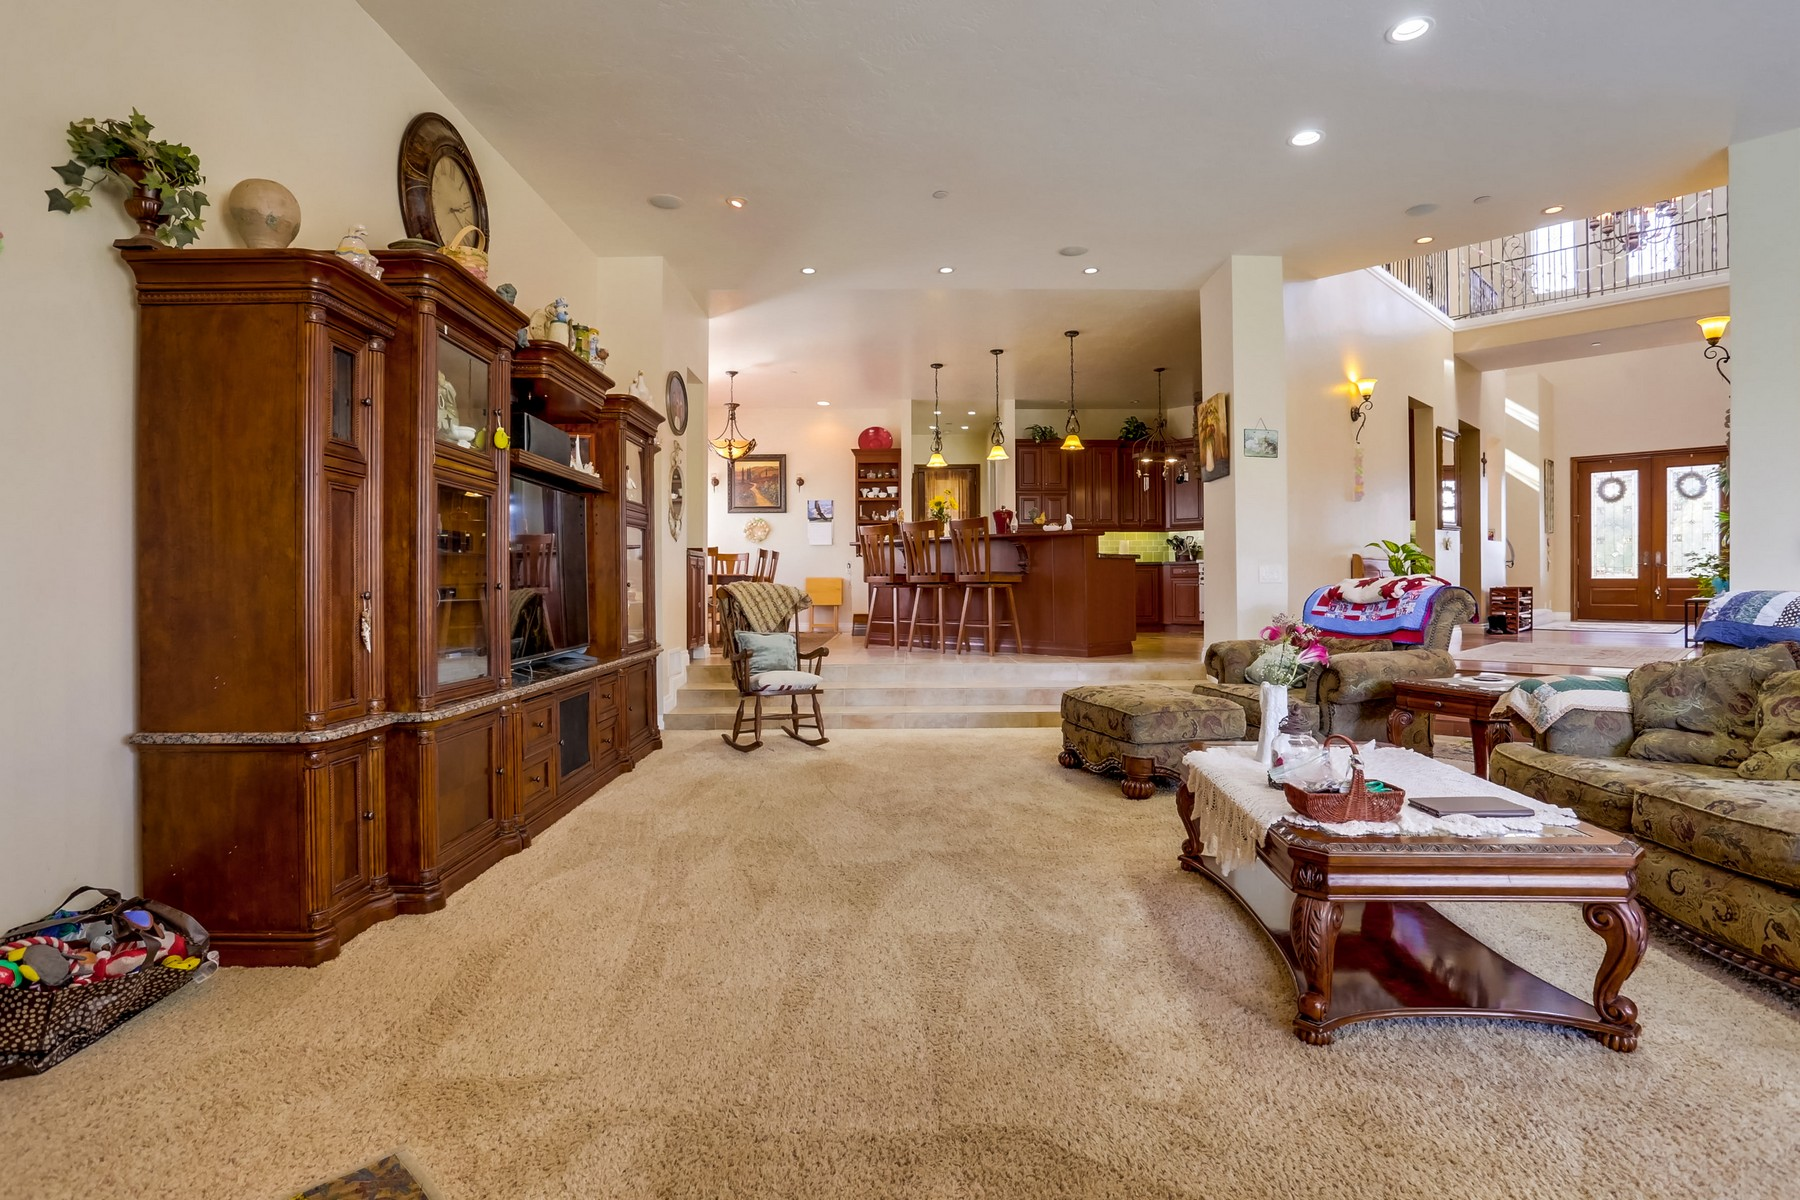 Single Family Homes for Sale at 31375 Station Rd Valley Center, California 92082 United States